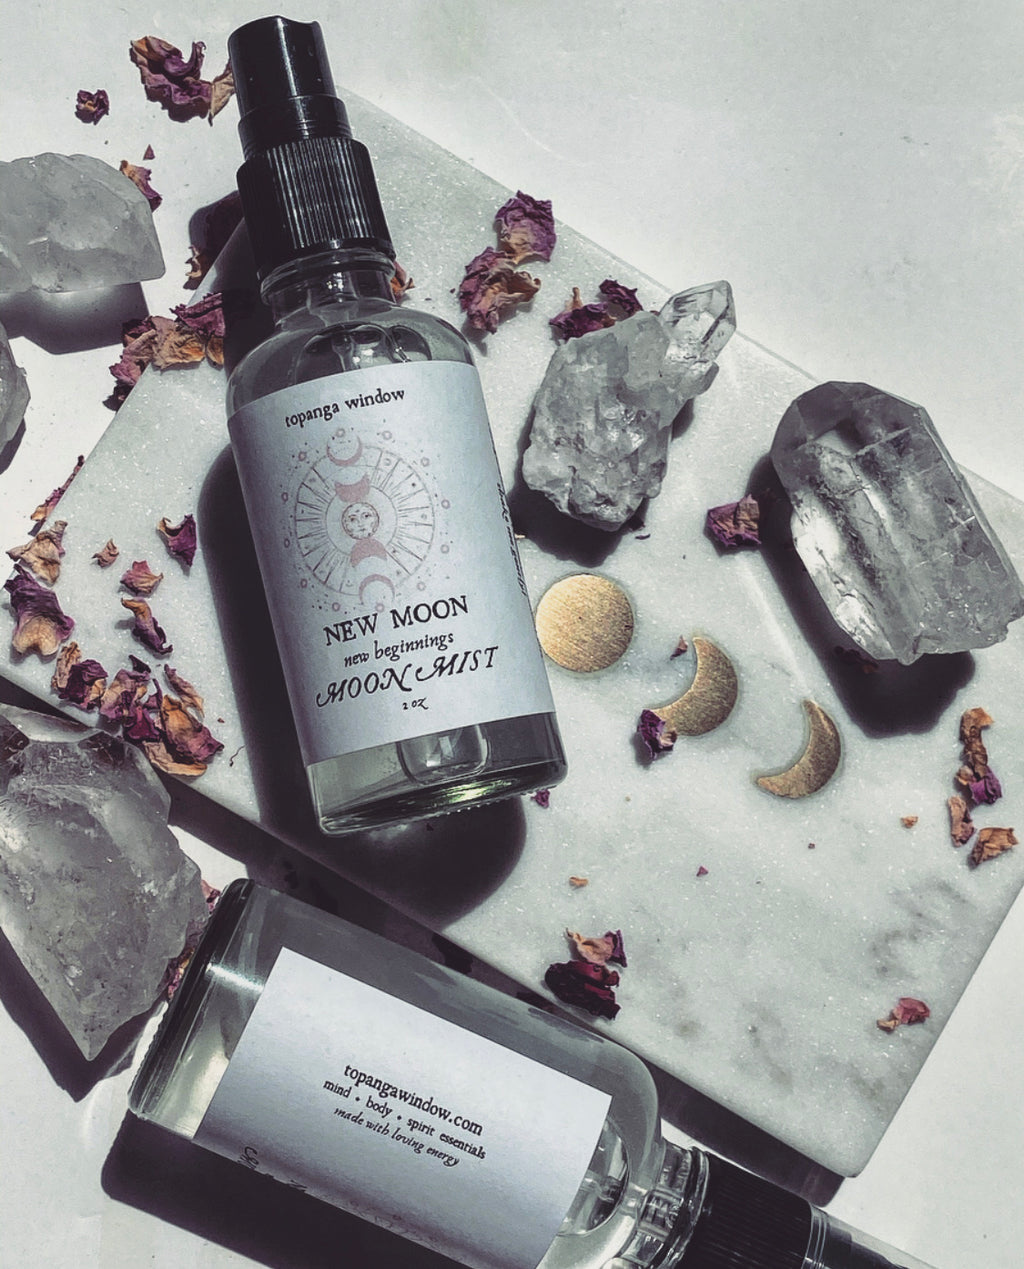 NEW MOON MIST Moon Water Moon Rituals + Infused with Healing Crystal